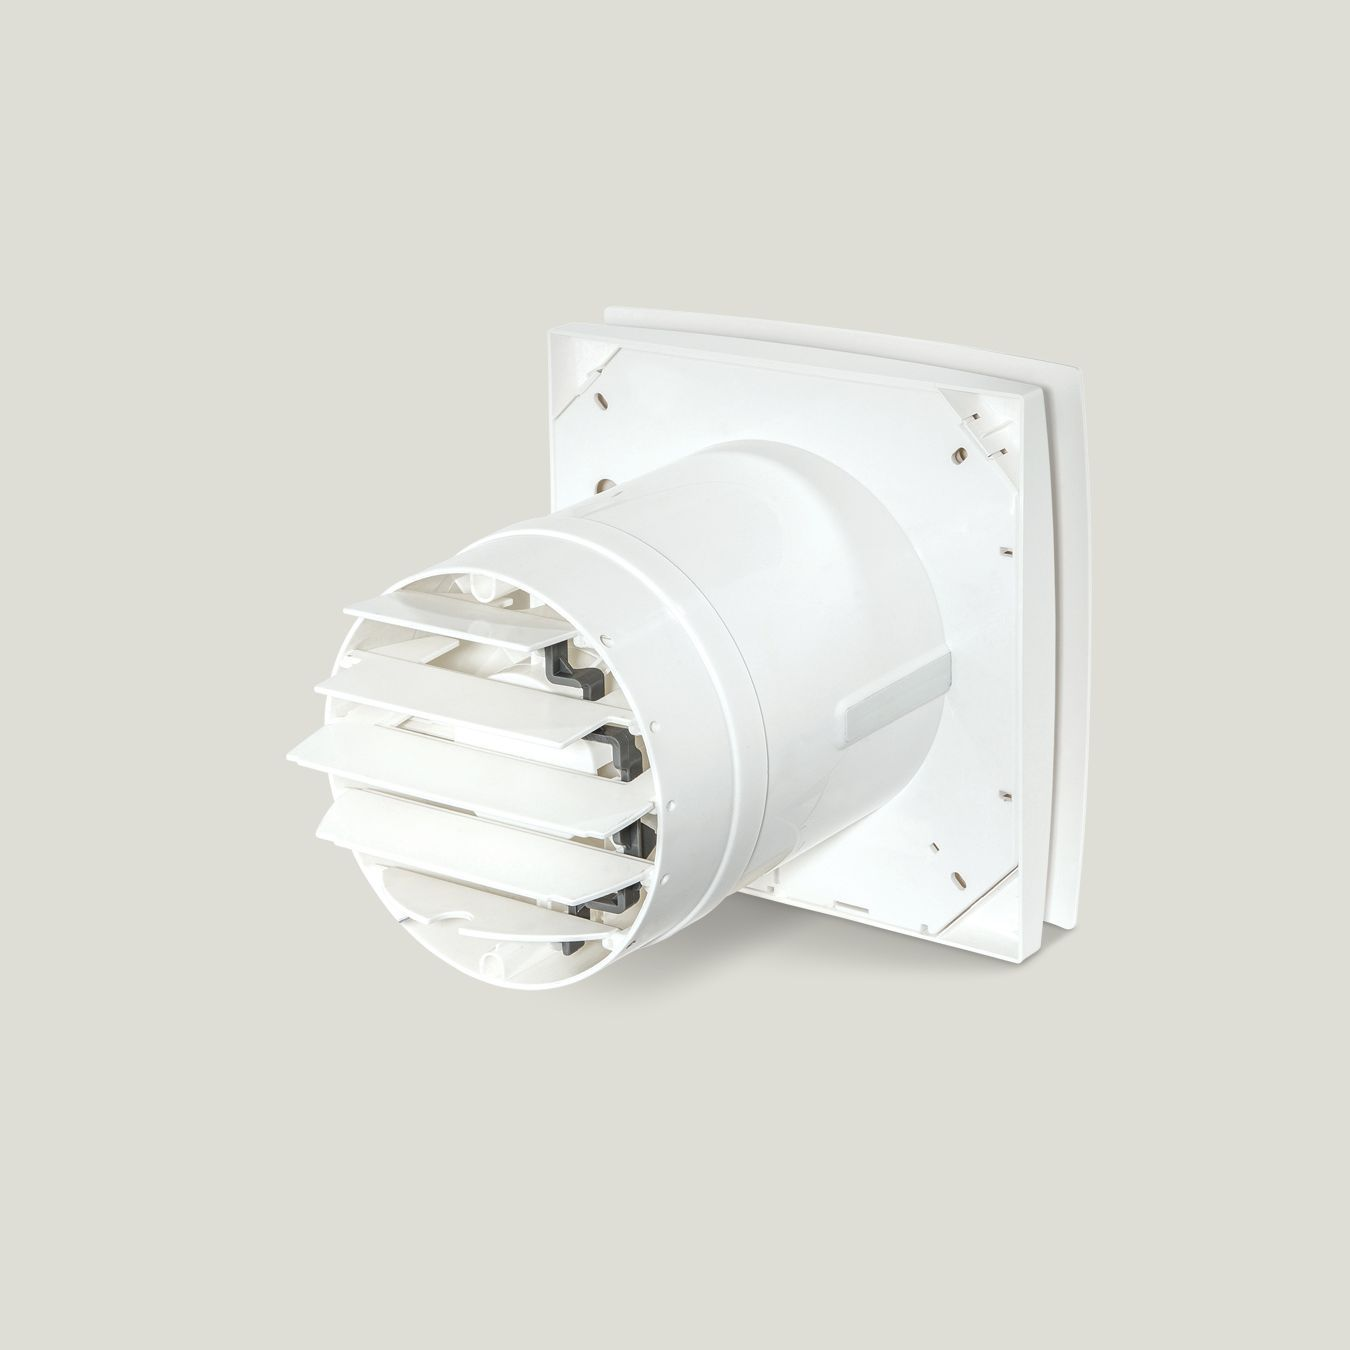 150mm Square White Finish Exhaust Fans With Shutters Nz Site